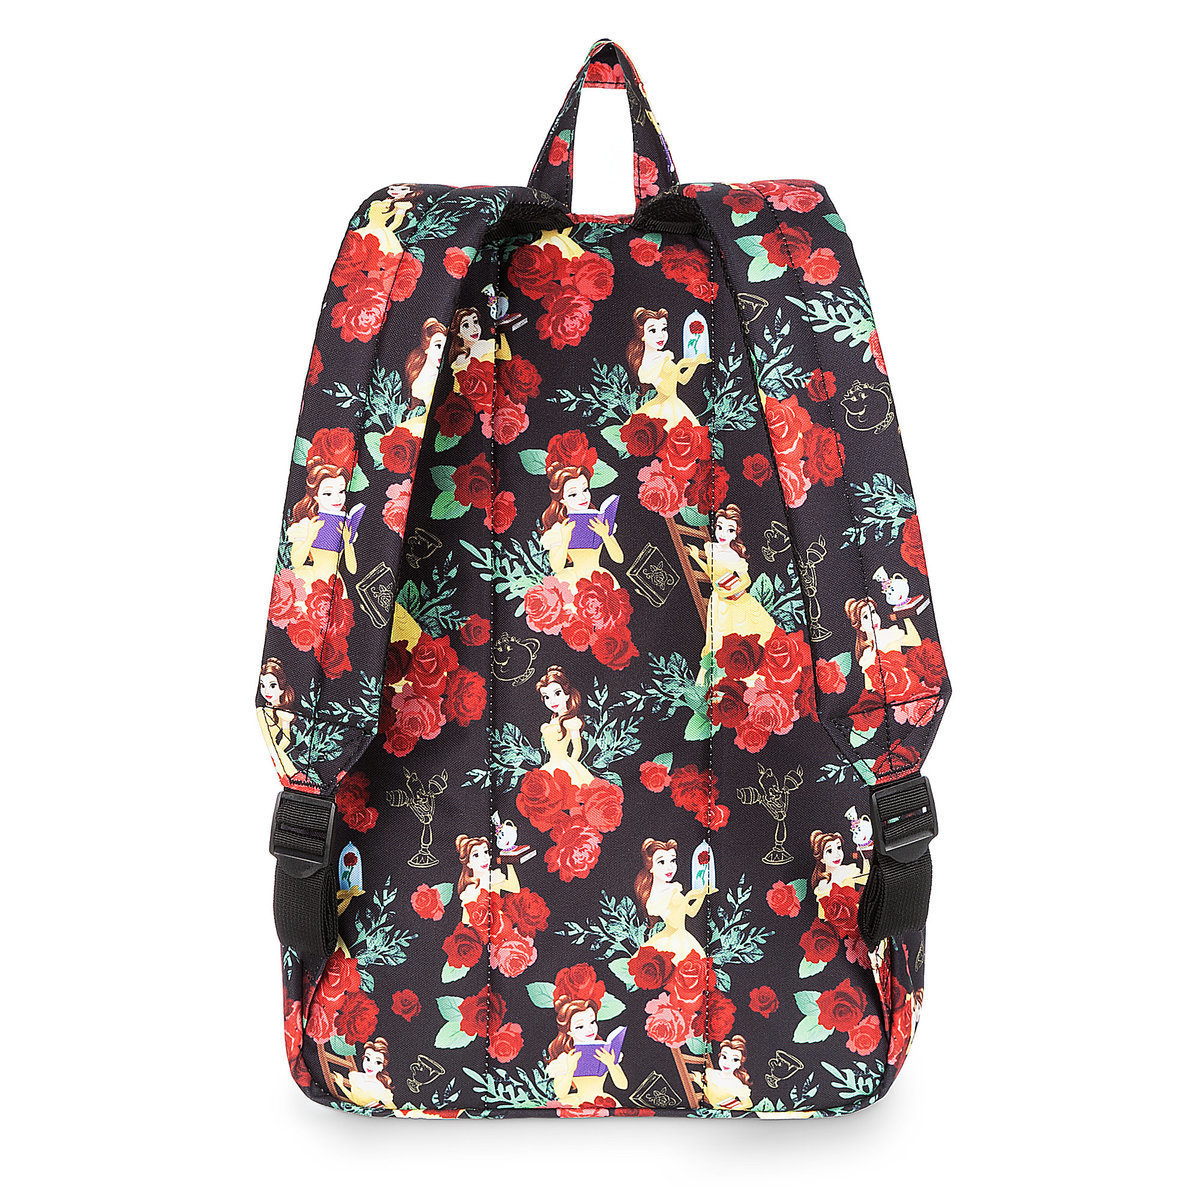 ◎送料込◎ Belle Backpack by Loungefly